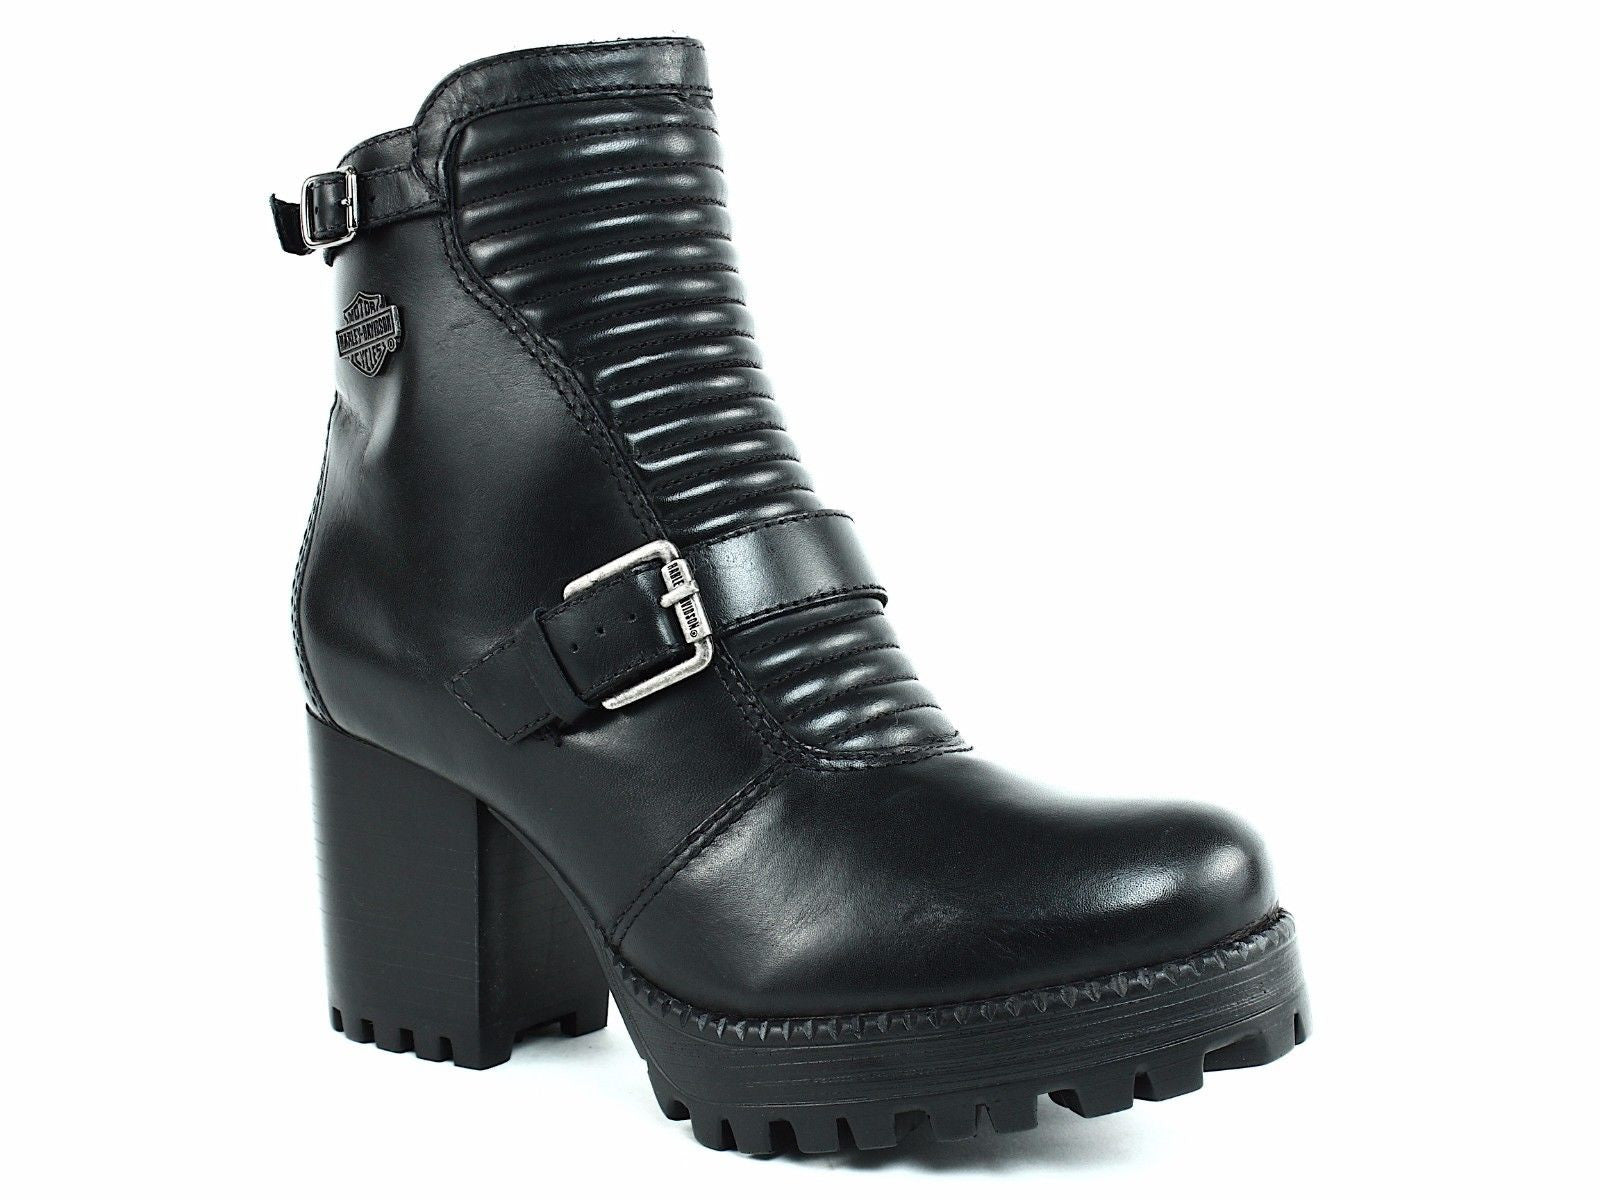 960a1a773511a1 Harley Davidson CANELL Women s Ankle Platform Zip Buckle Black Leather –  ShoeVariety.com